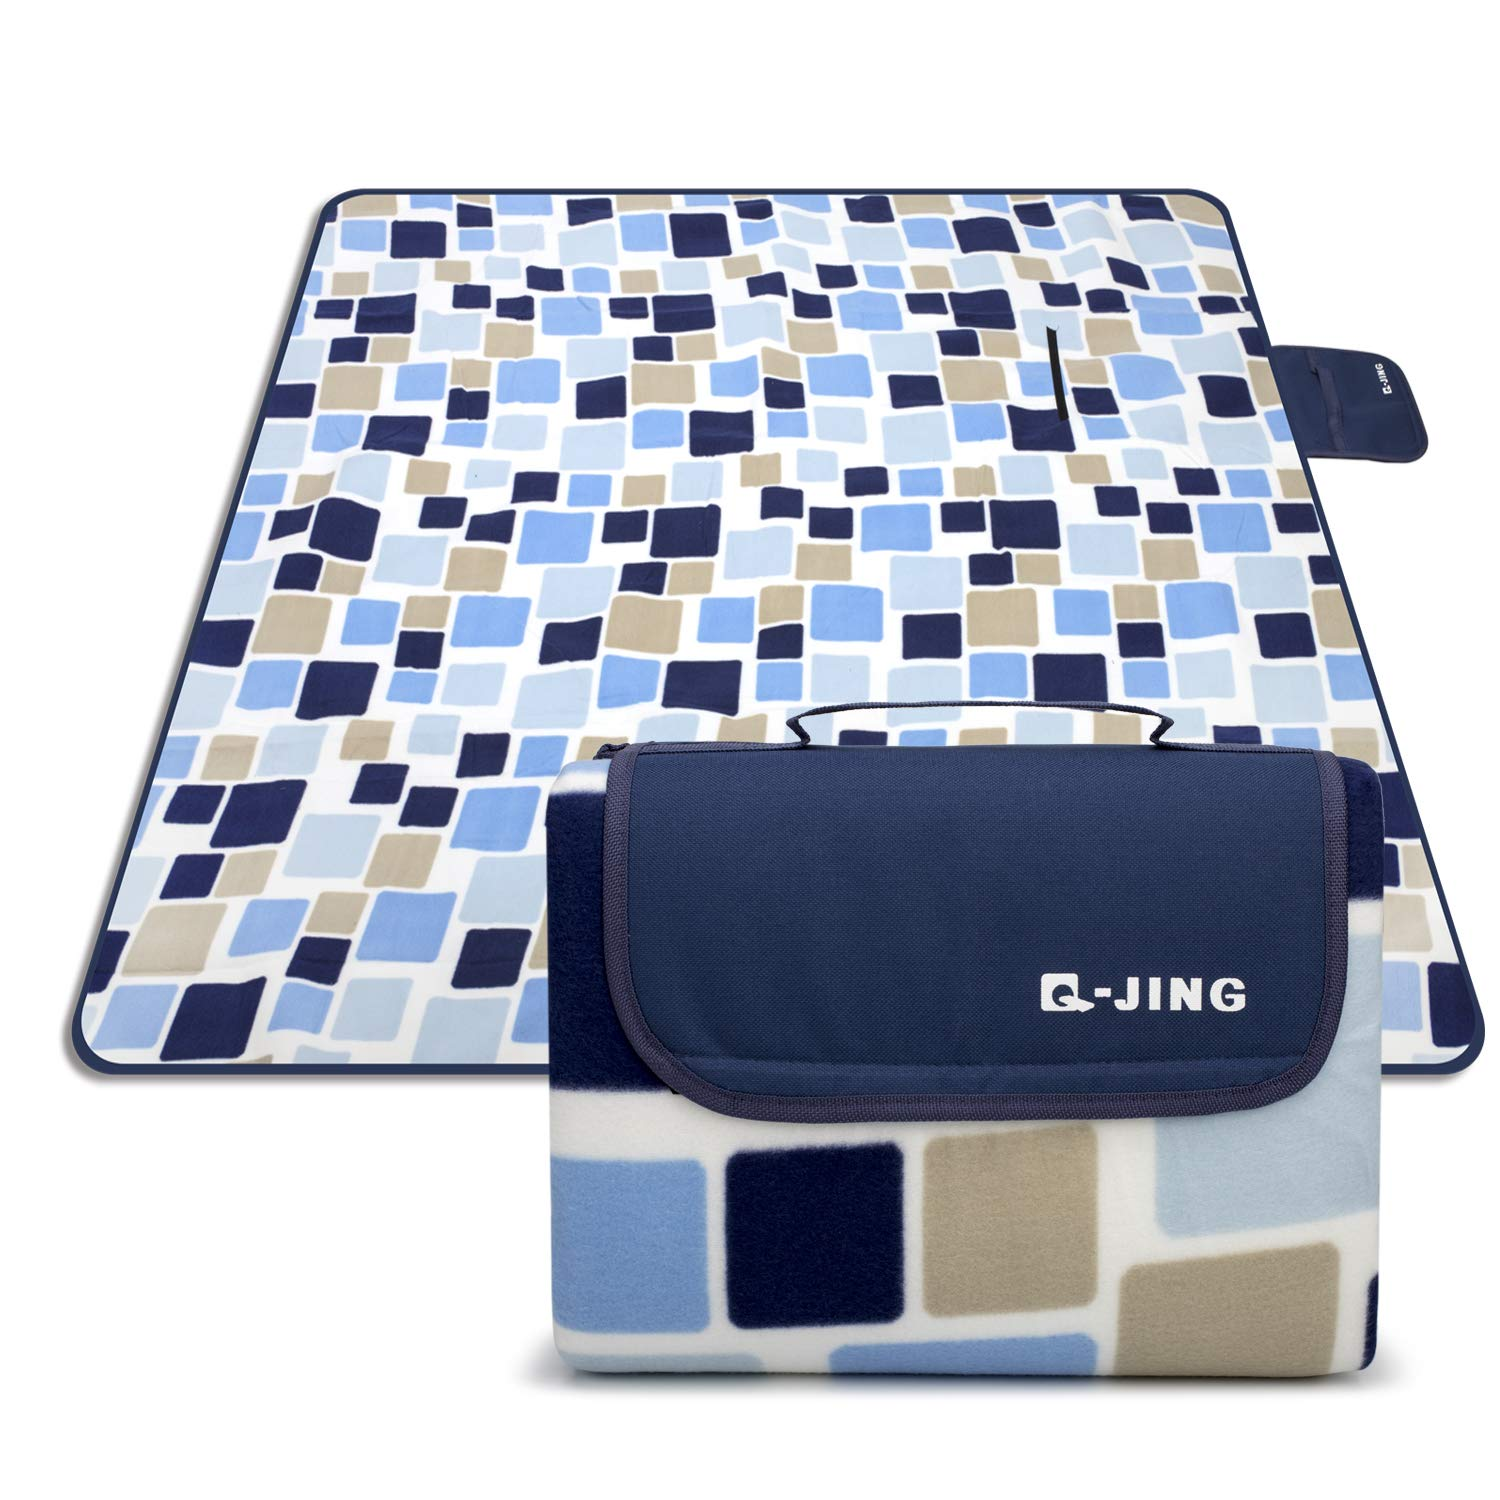 Q-JING Extra Large Picnic & Outdoor Blanket, Waterproof Handy Mat Tote for Camping Hiking Grass Travelling Dual Layers Multicolored Squares by Q-JING